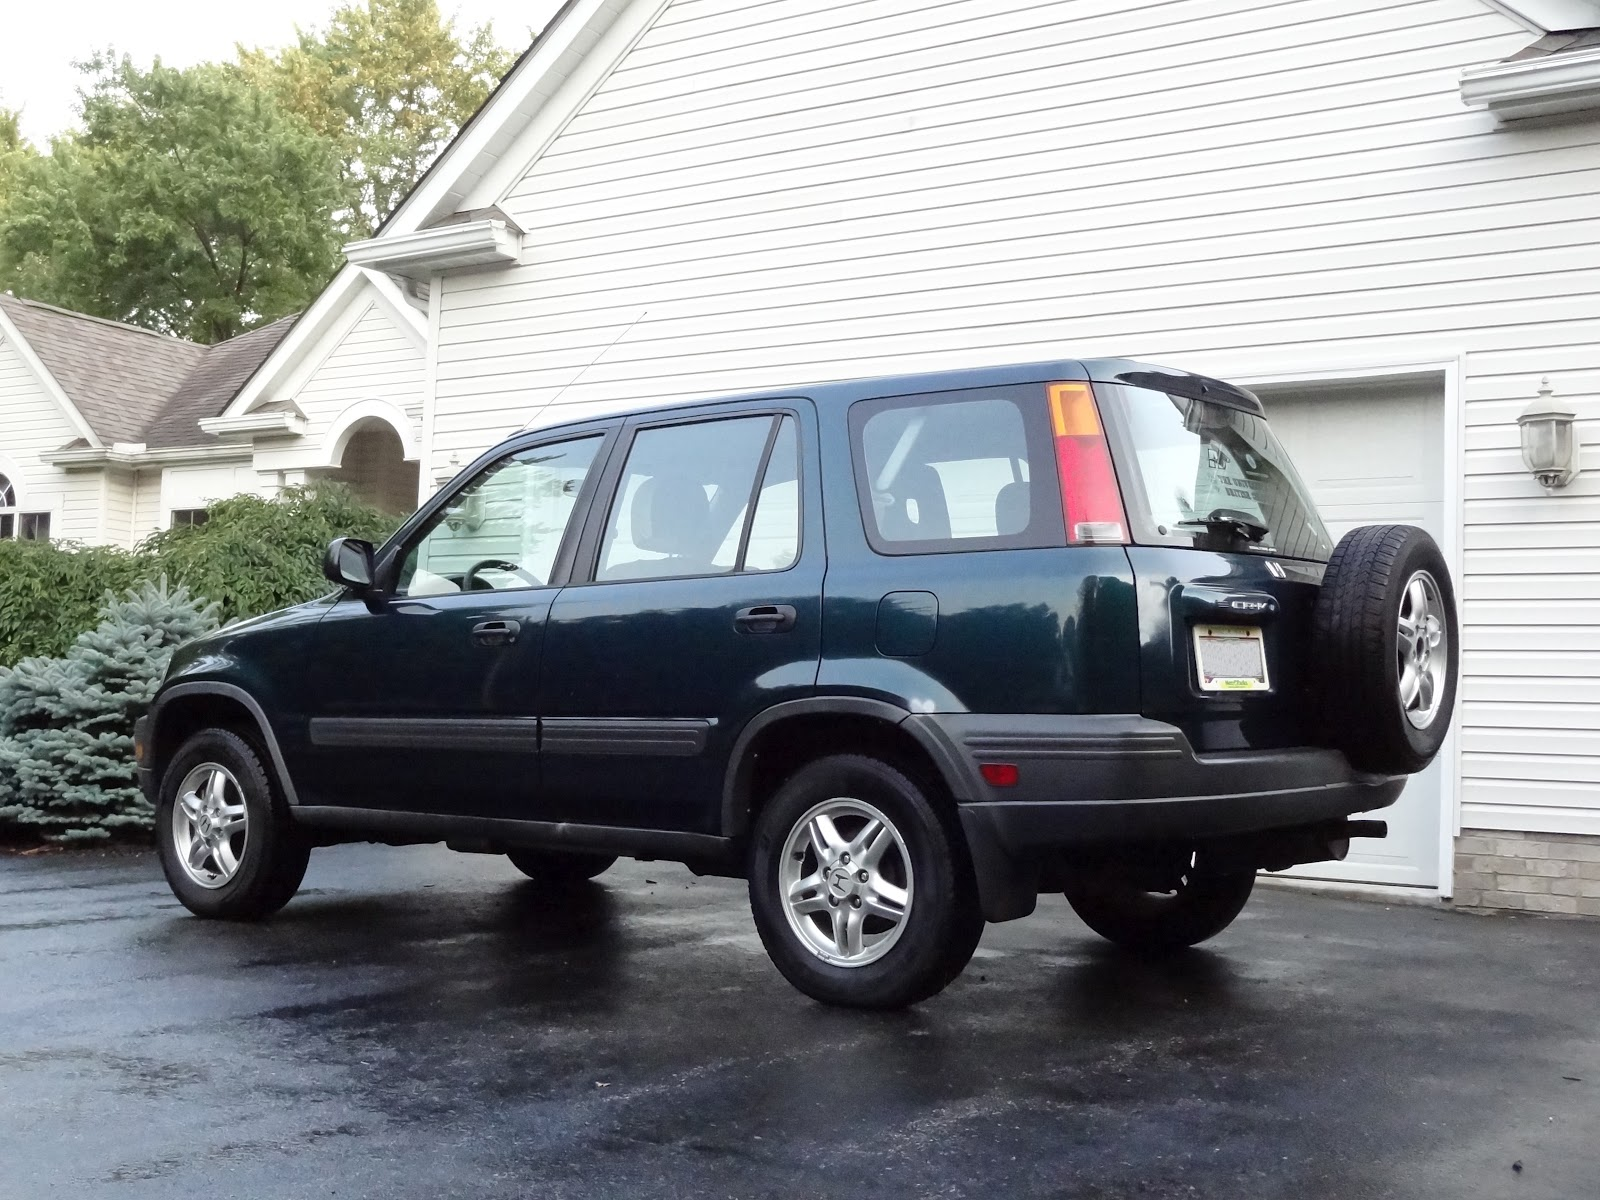 1997 honda crv 4 000 in stow oh moving sale. Black Bedroom Furniture Sets. Home Design Ideas